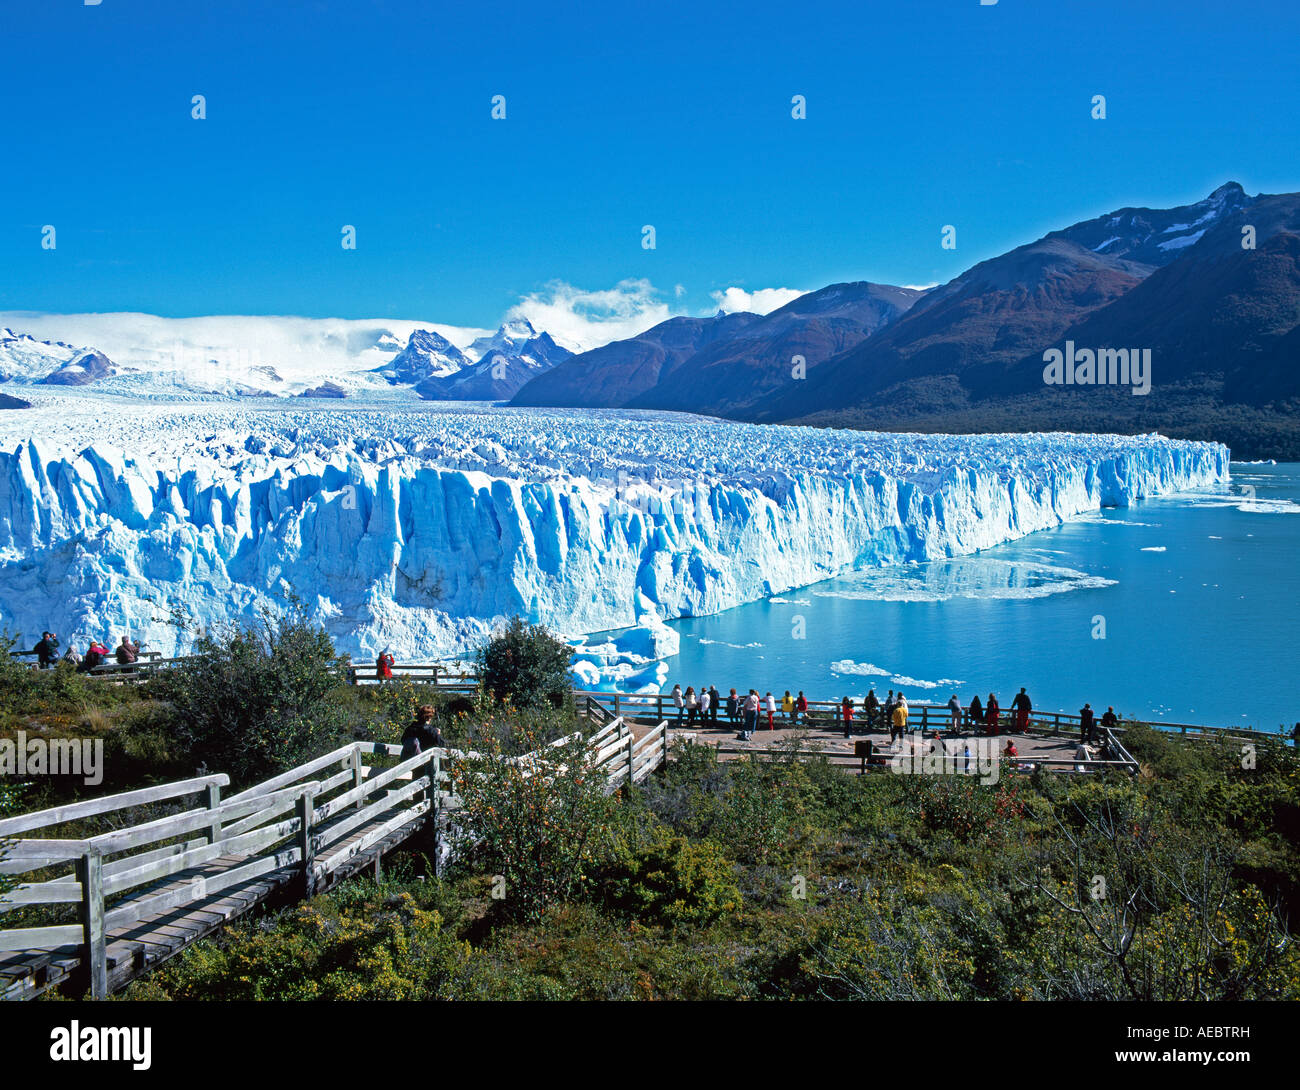 Patagonia South America >> Perito Moreno glacier Parque Nacional Los Glaciares UNESCO World Stock Photo, Royalty Free Image ...